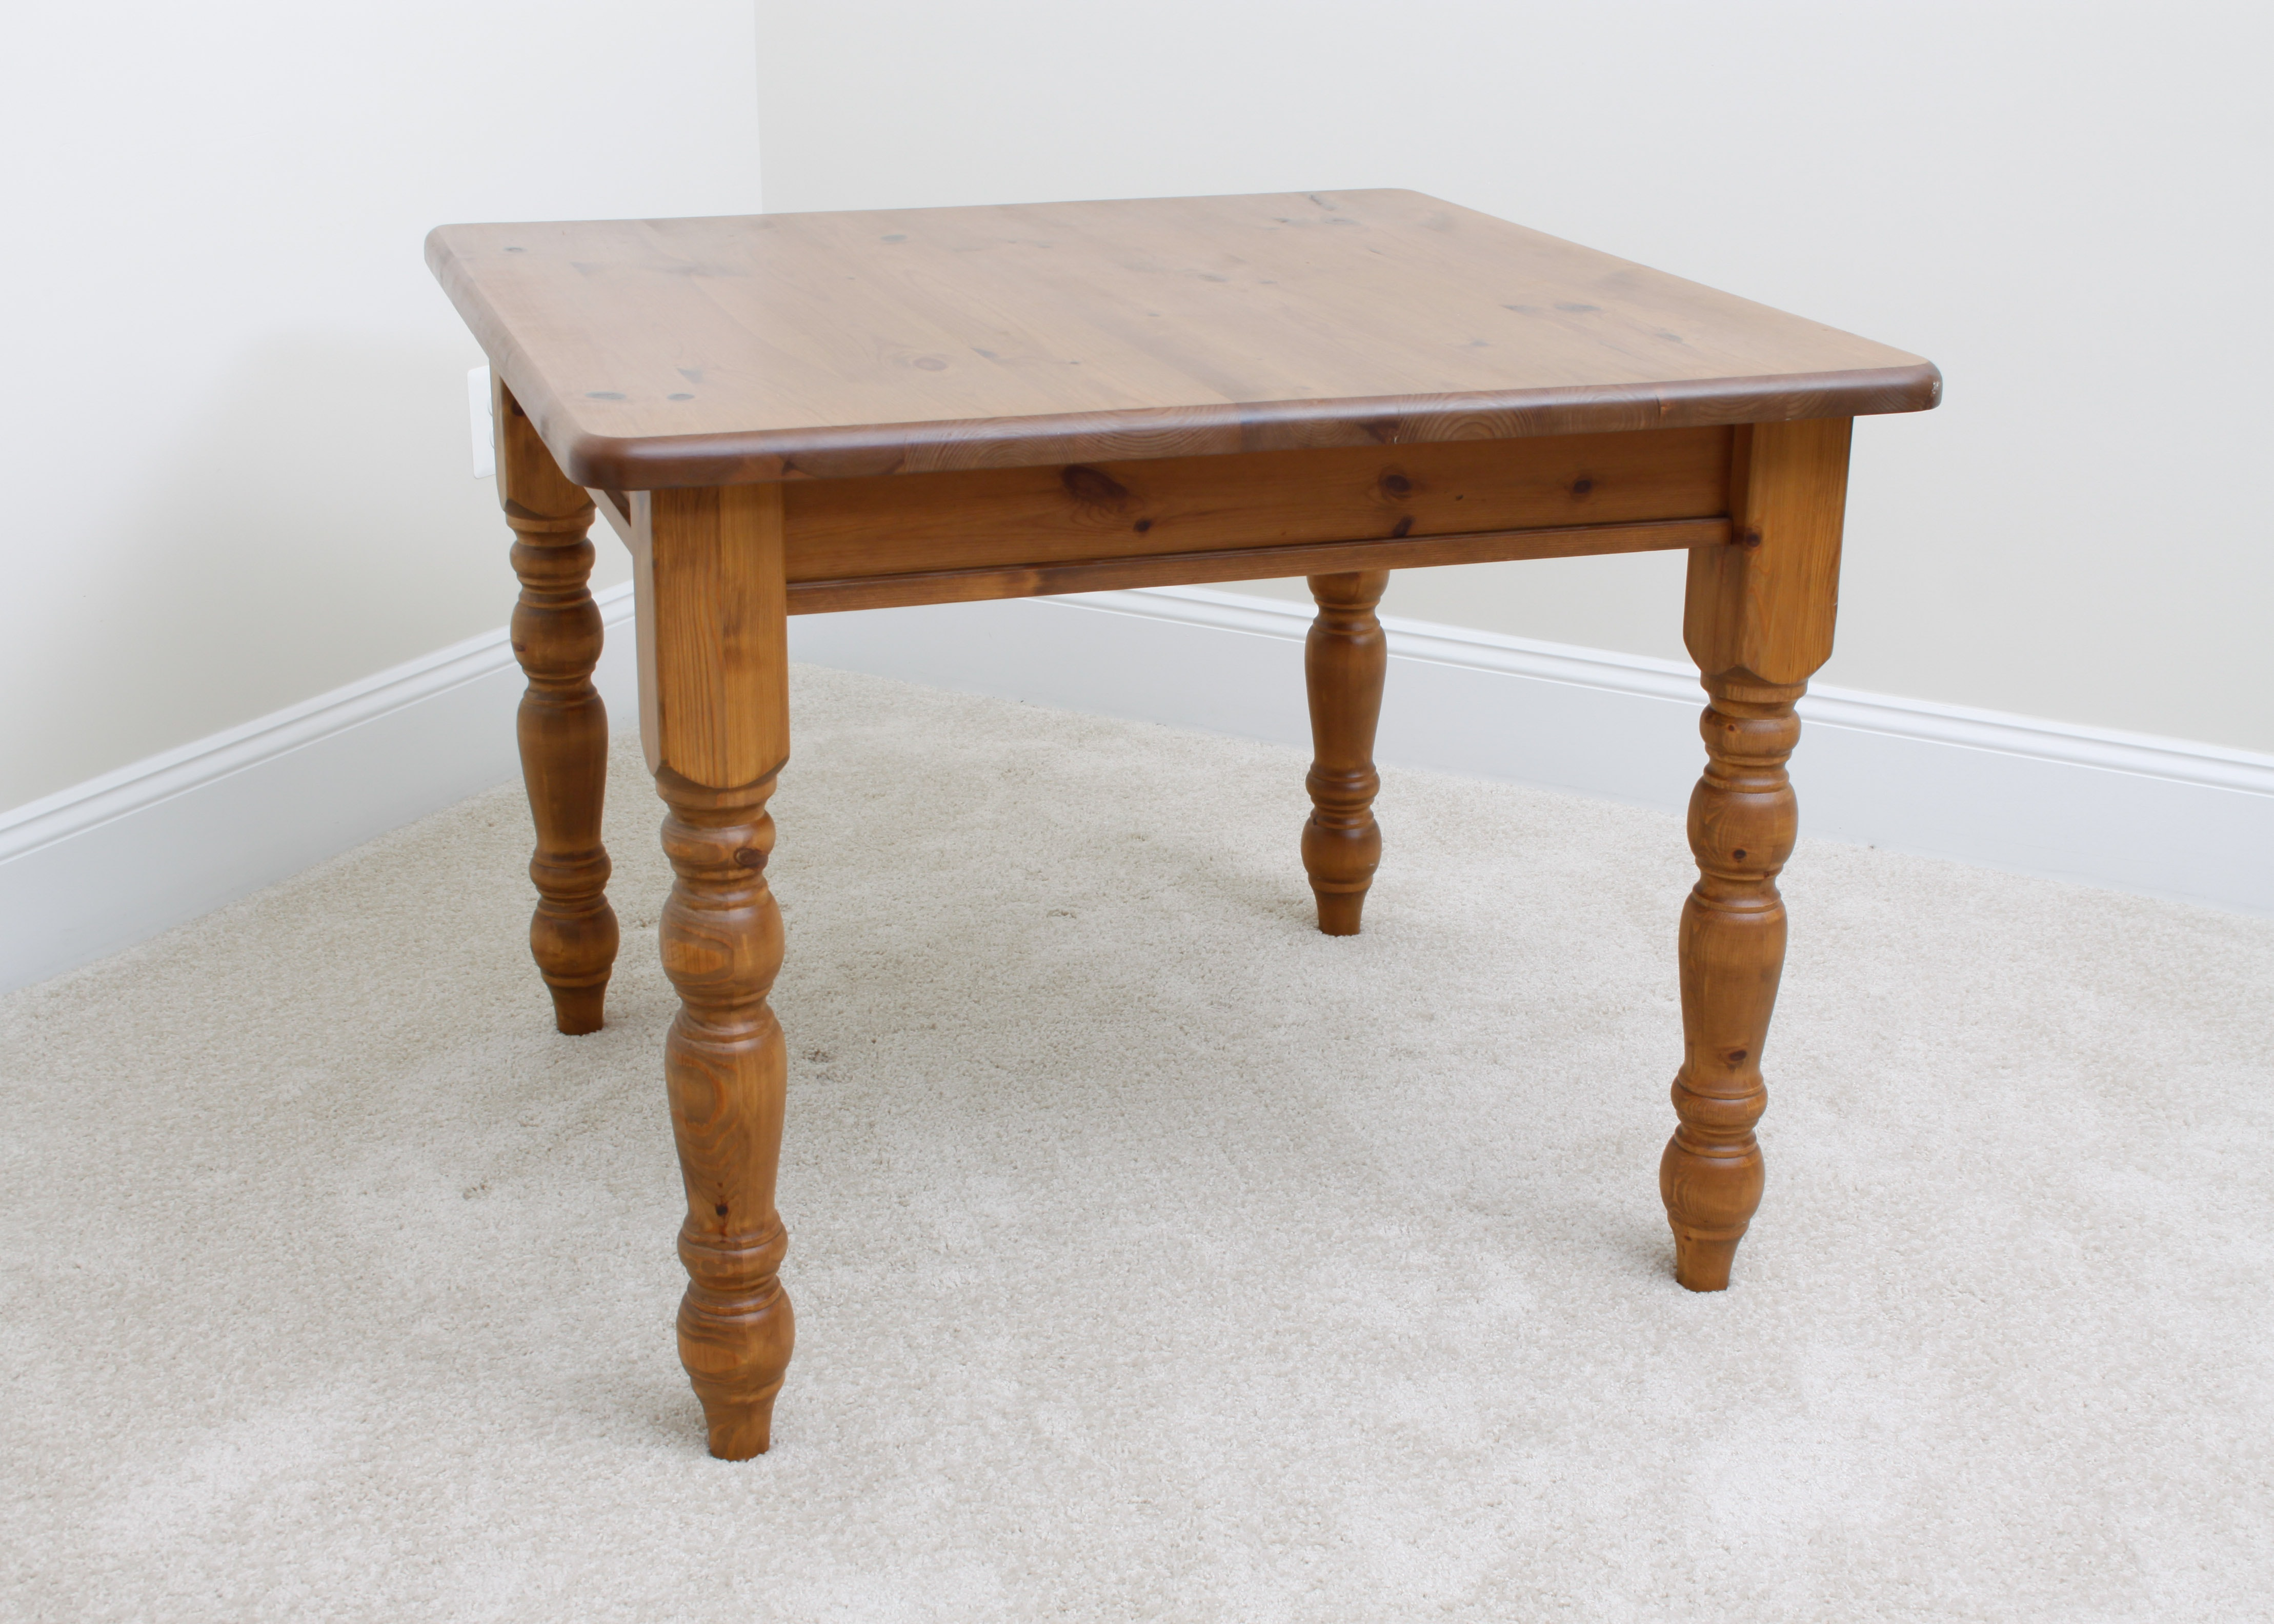 Knotty Pine Pottery Barn Dining Table ...